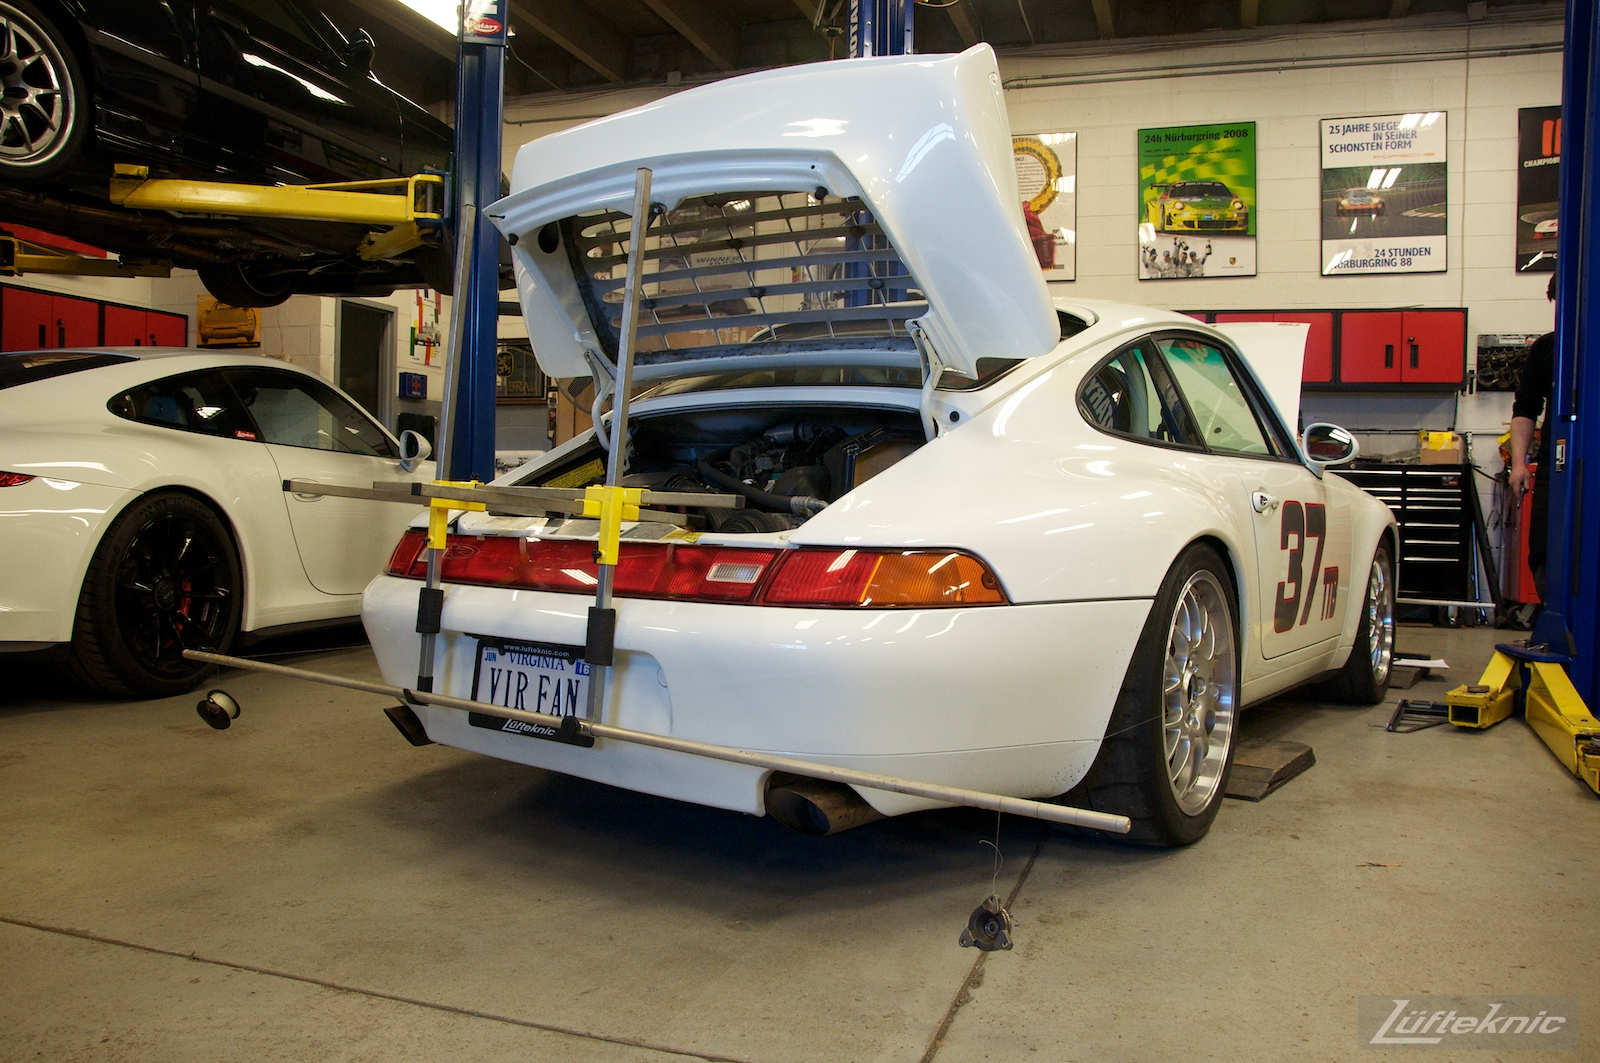 A white Porsche 993 race car inside the Lufteknic shop with alignment strings attached.